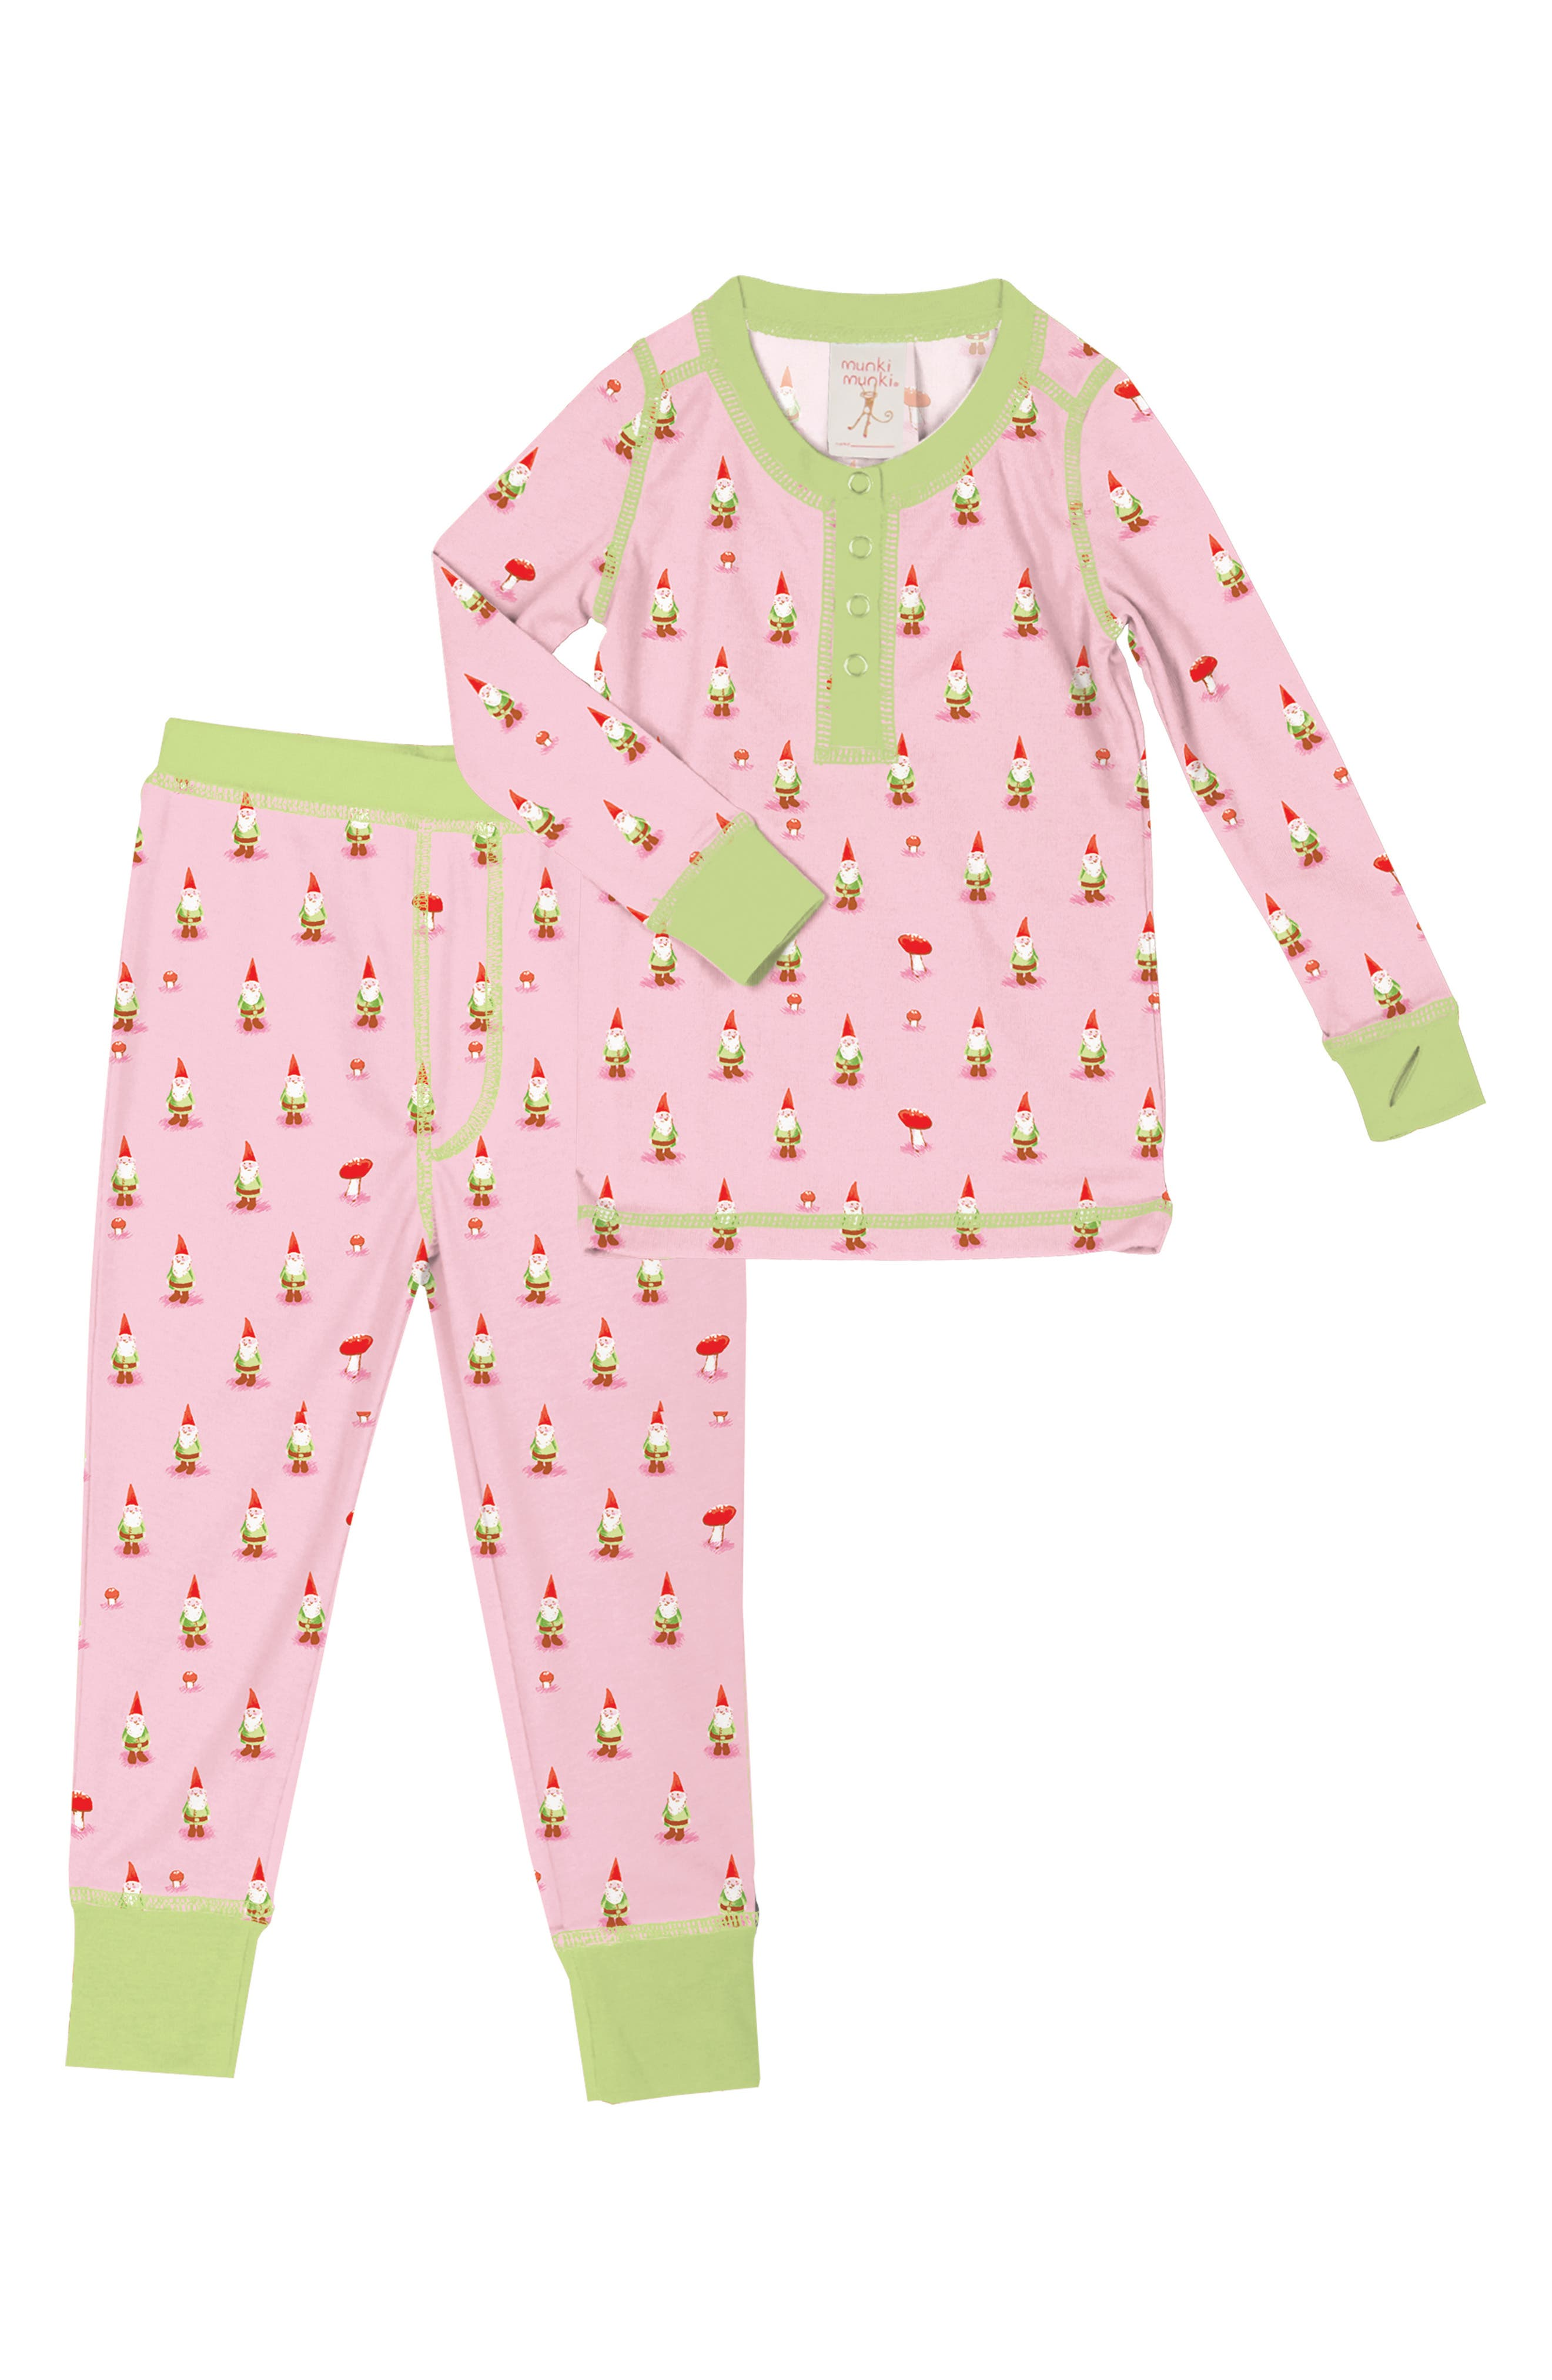 Gnomes Fitted Two-Piece Pajamas,                             Main thumbnail 1, color,                             LIGHT PINK